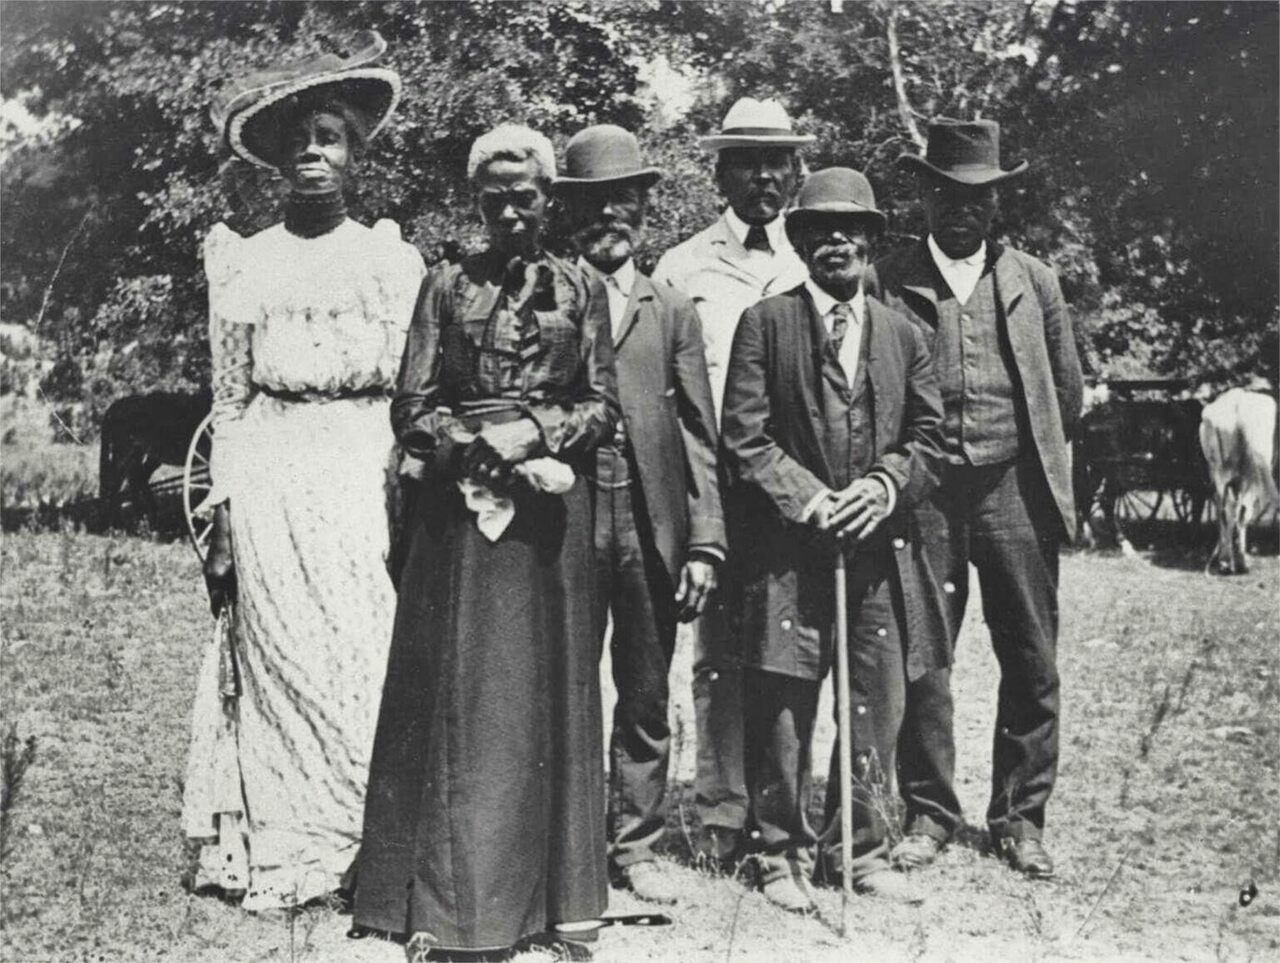 A Juneteenth celebration in Texas on June 19, 1900.